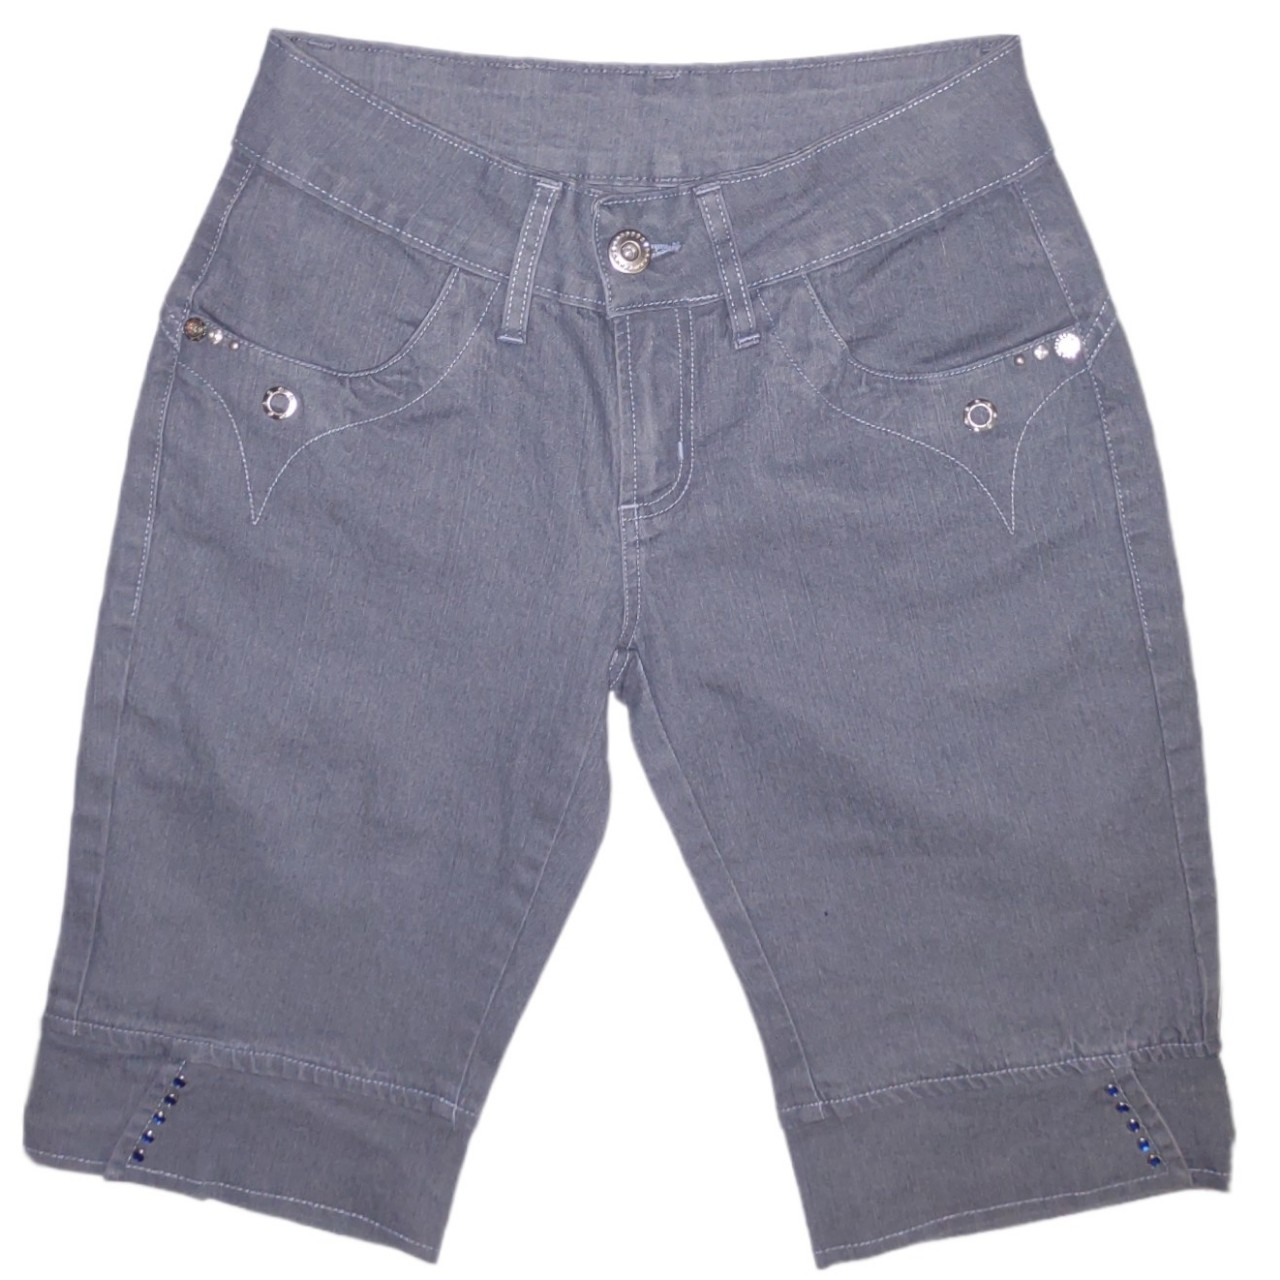 Product Image 1 - Grey gray jean above the